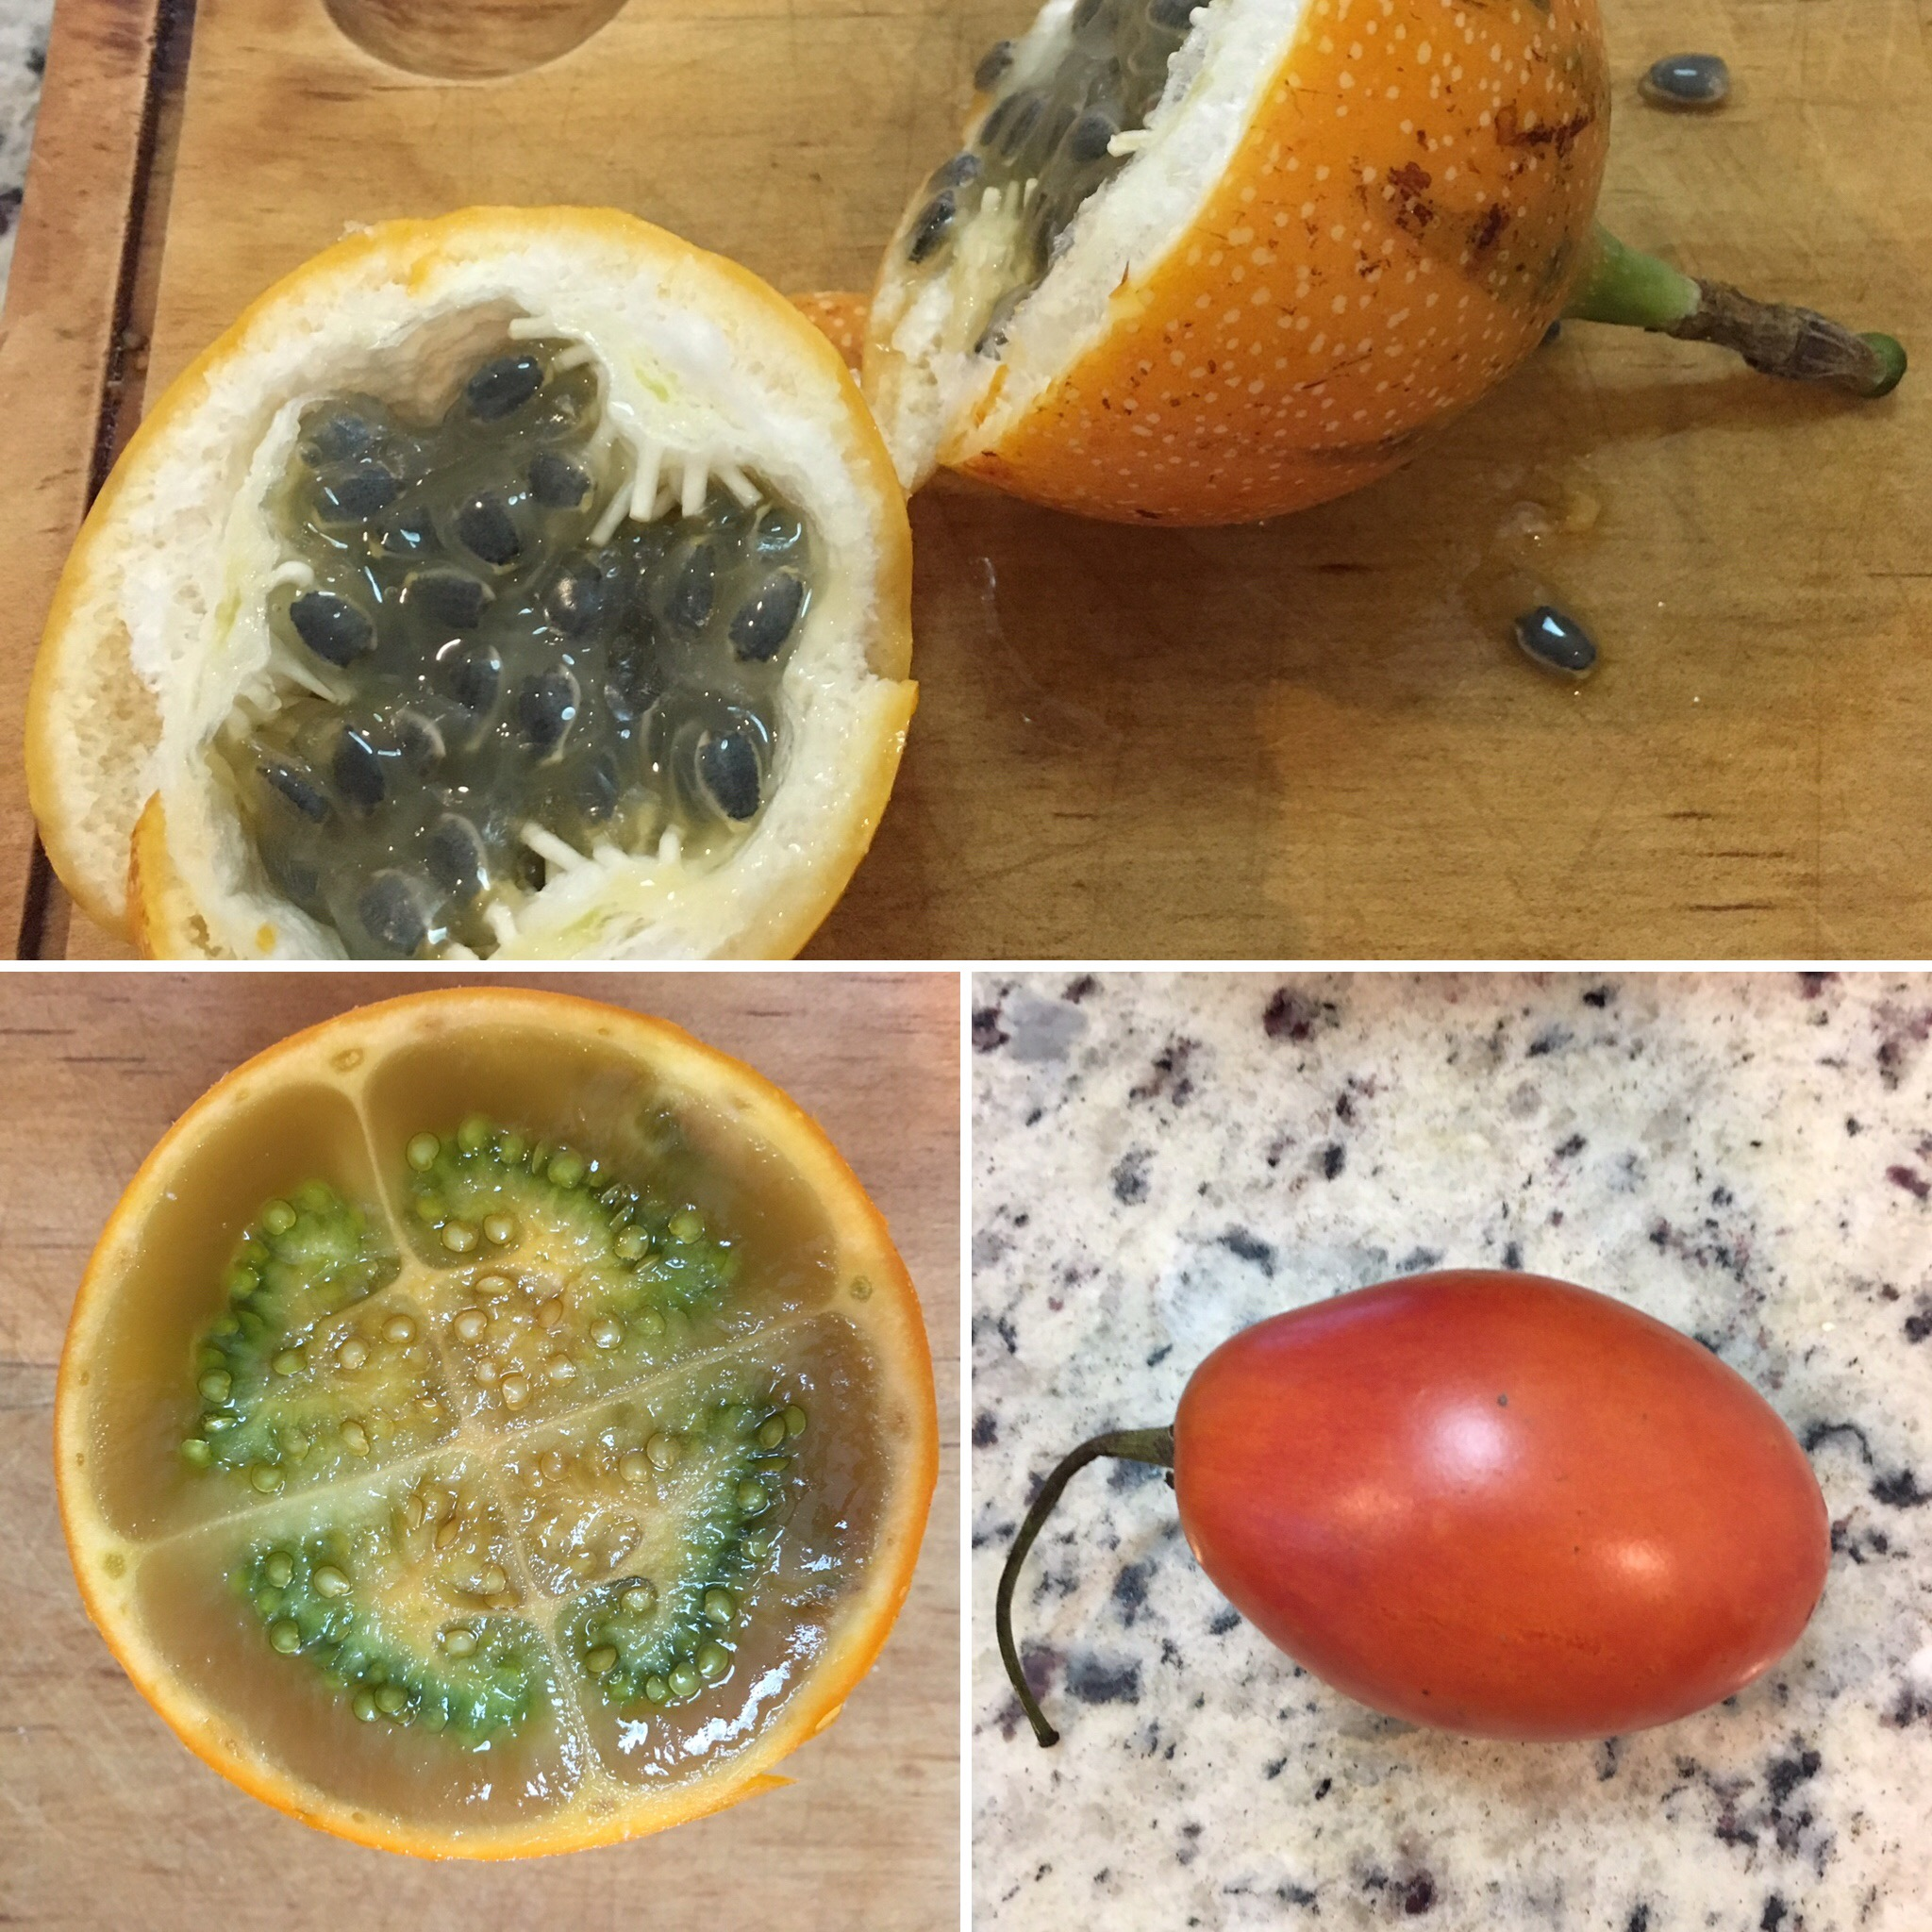 Top: granadilla - Bottom left: lulo - Bottom right: tomate de árbol